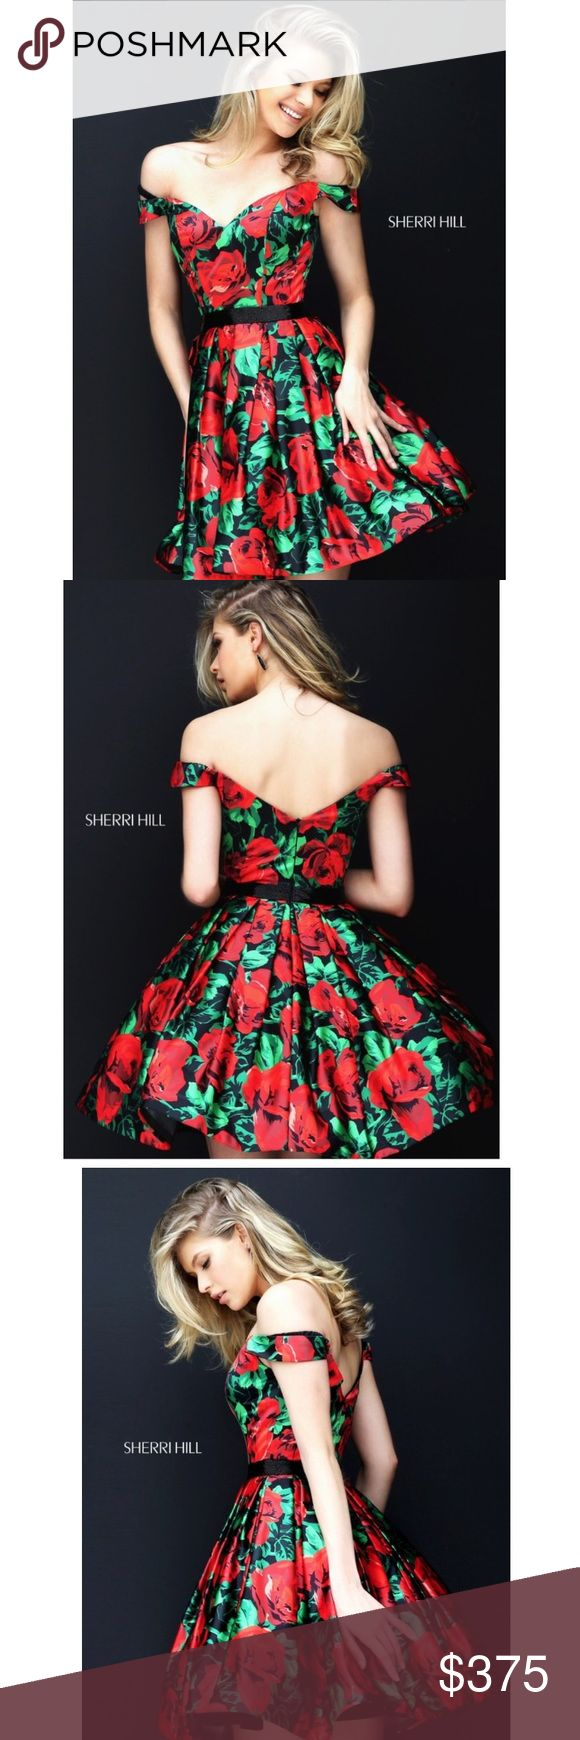 sherri hill floral prom homecoming formal dress PRICE REFLECTS POSH FEES. MAKE AN OFFER. brand new sherri hill off the shoulder short floral print dress. has a beaded waist. multiple layers of tulle underneath. worn once for an hour. no damages or alterations at all. tag says size 4, also could fit a size 2 or 0. super cute dress in perfect condition. so much fun to dance & twirl in! i got so many compliments on this dress! definitely a showstopper. it will be hard to let this go, but i will…